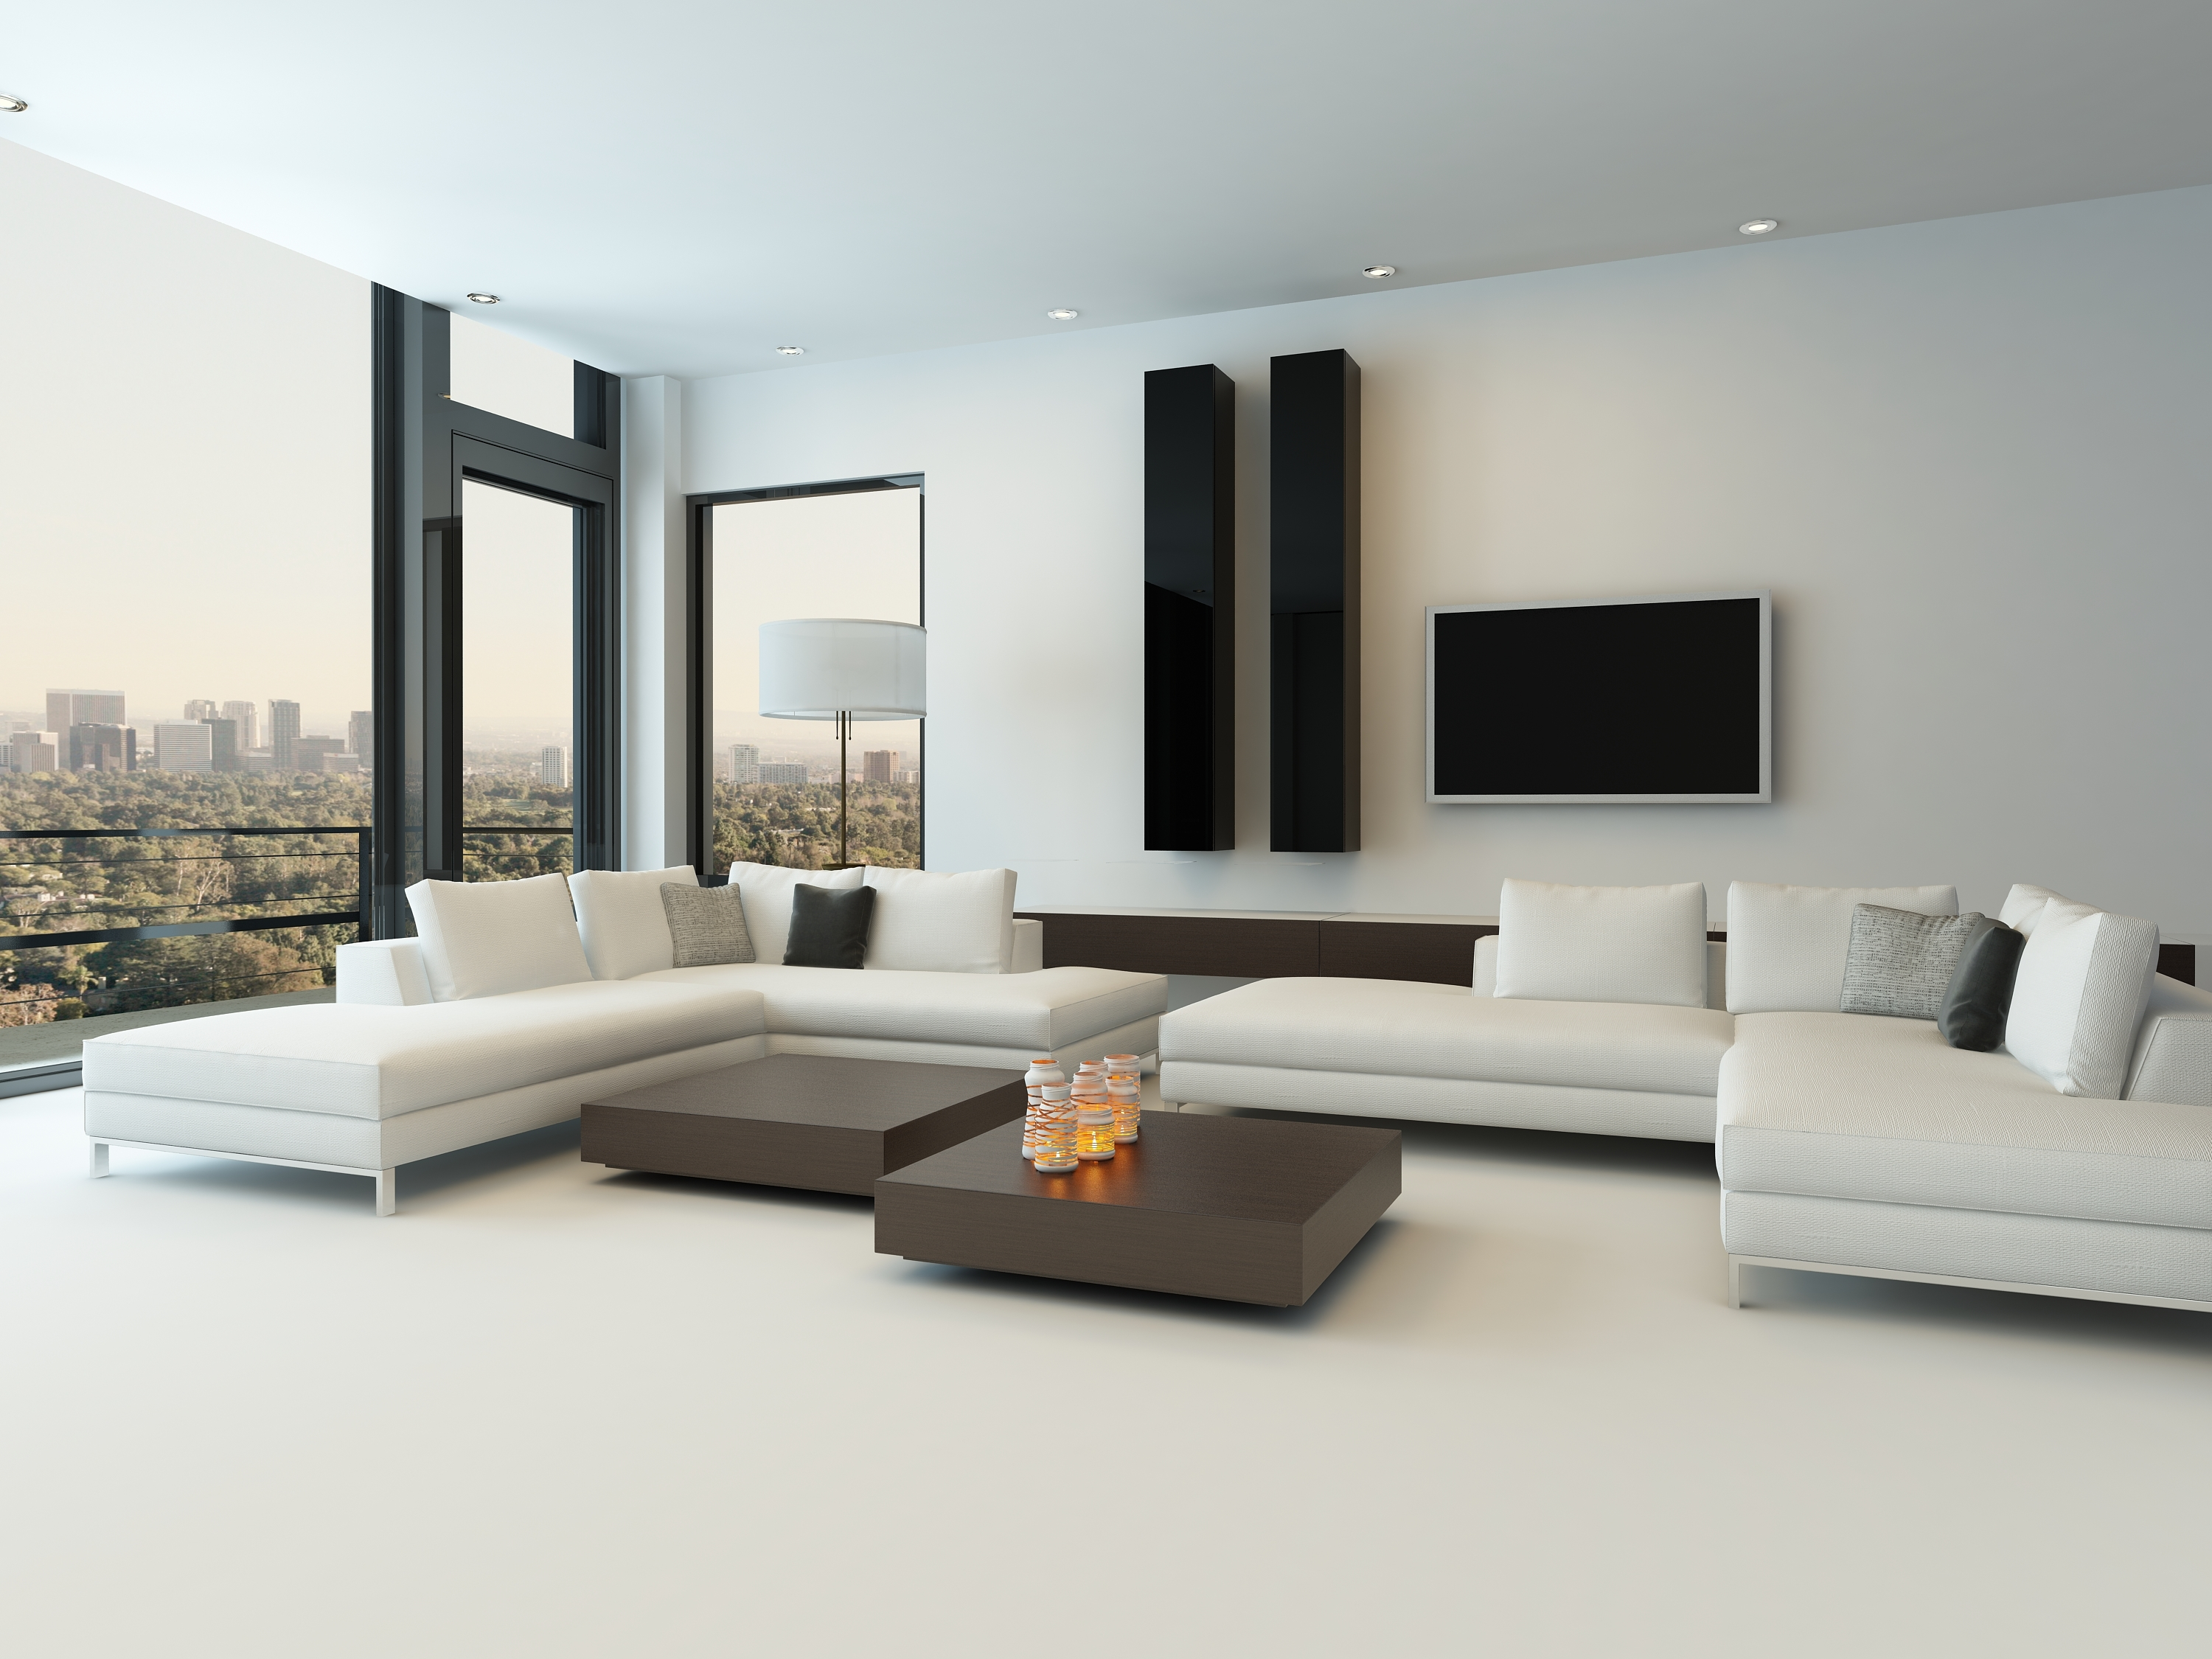 living room with white sectional couch